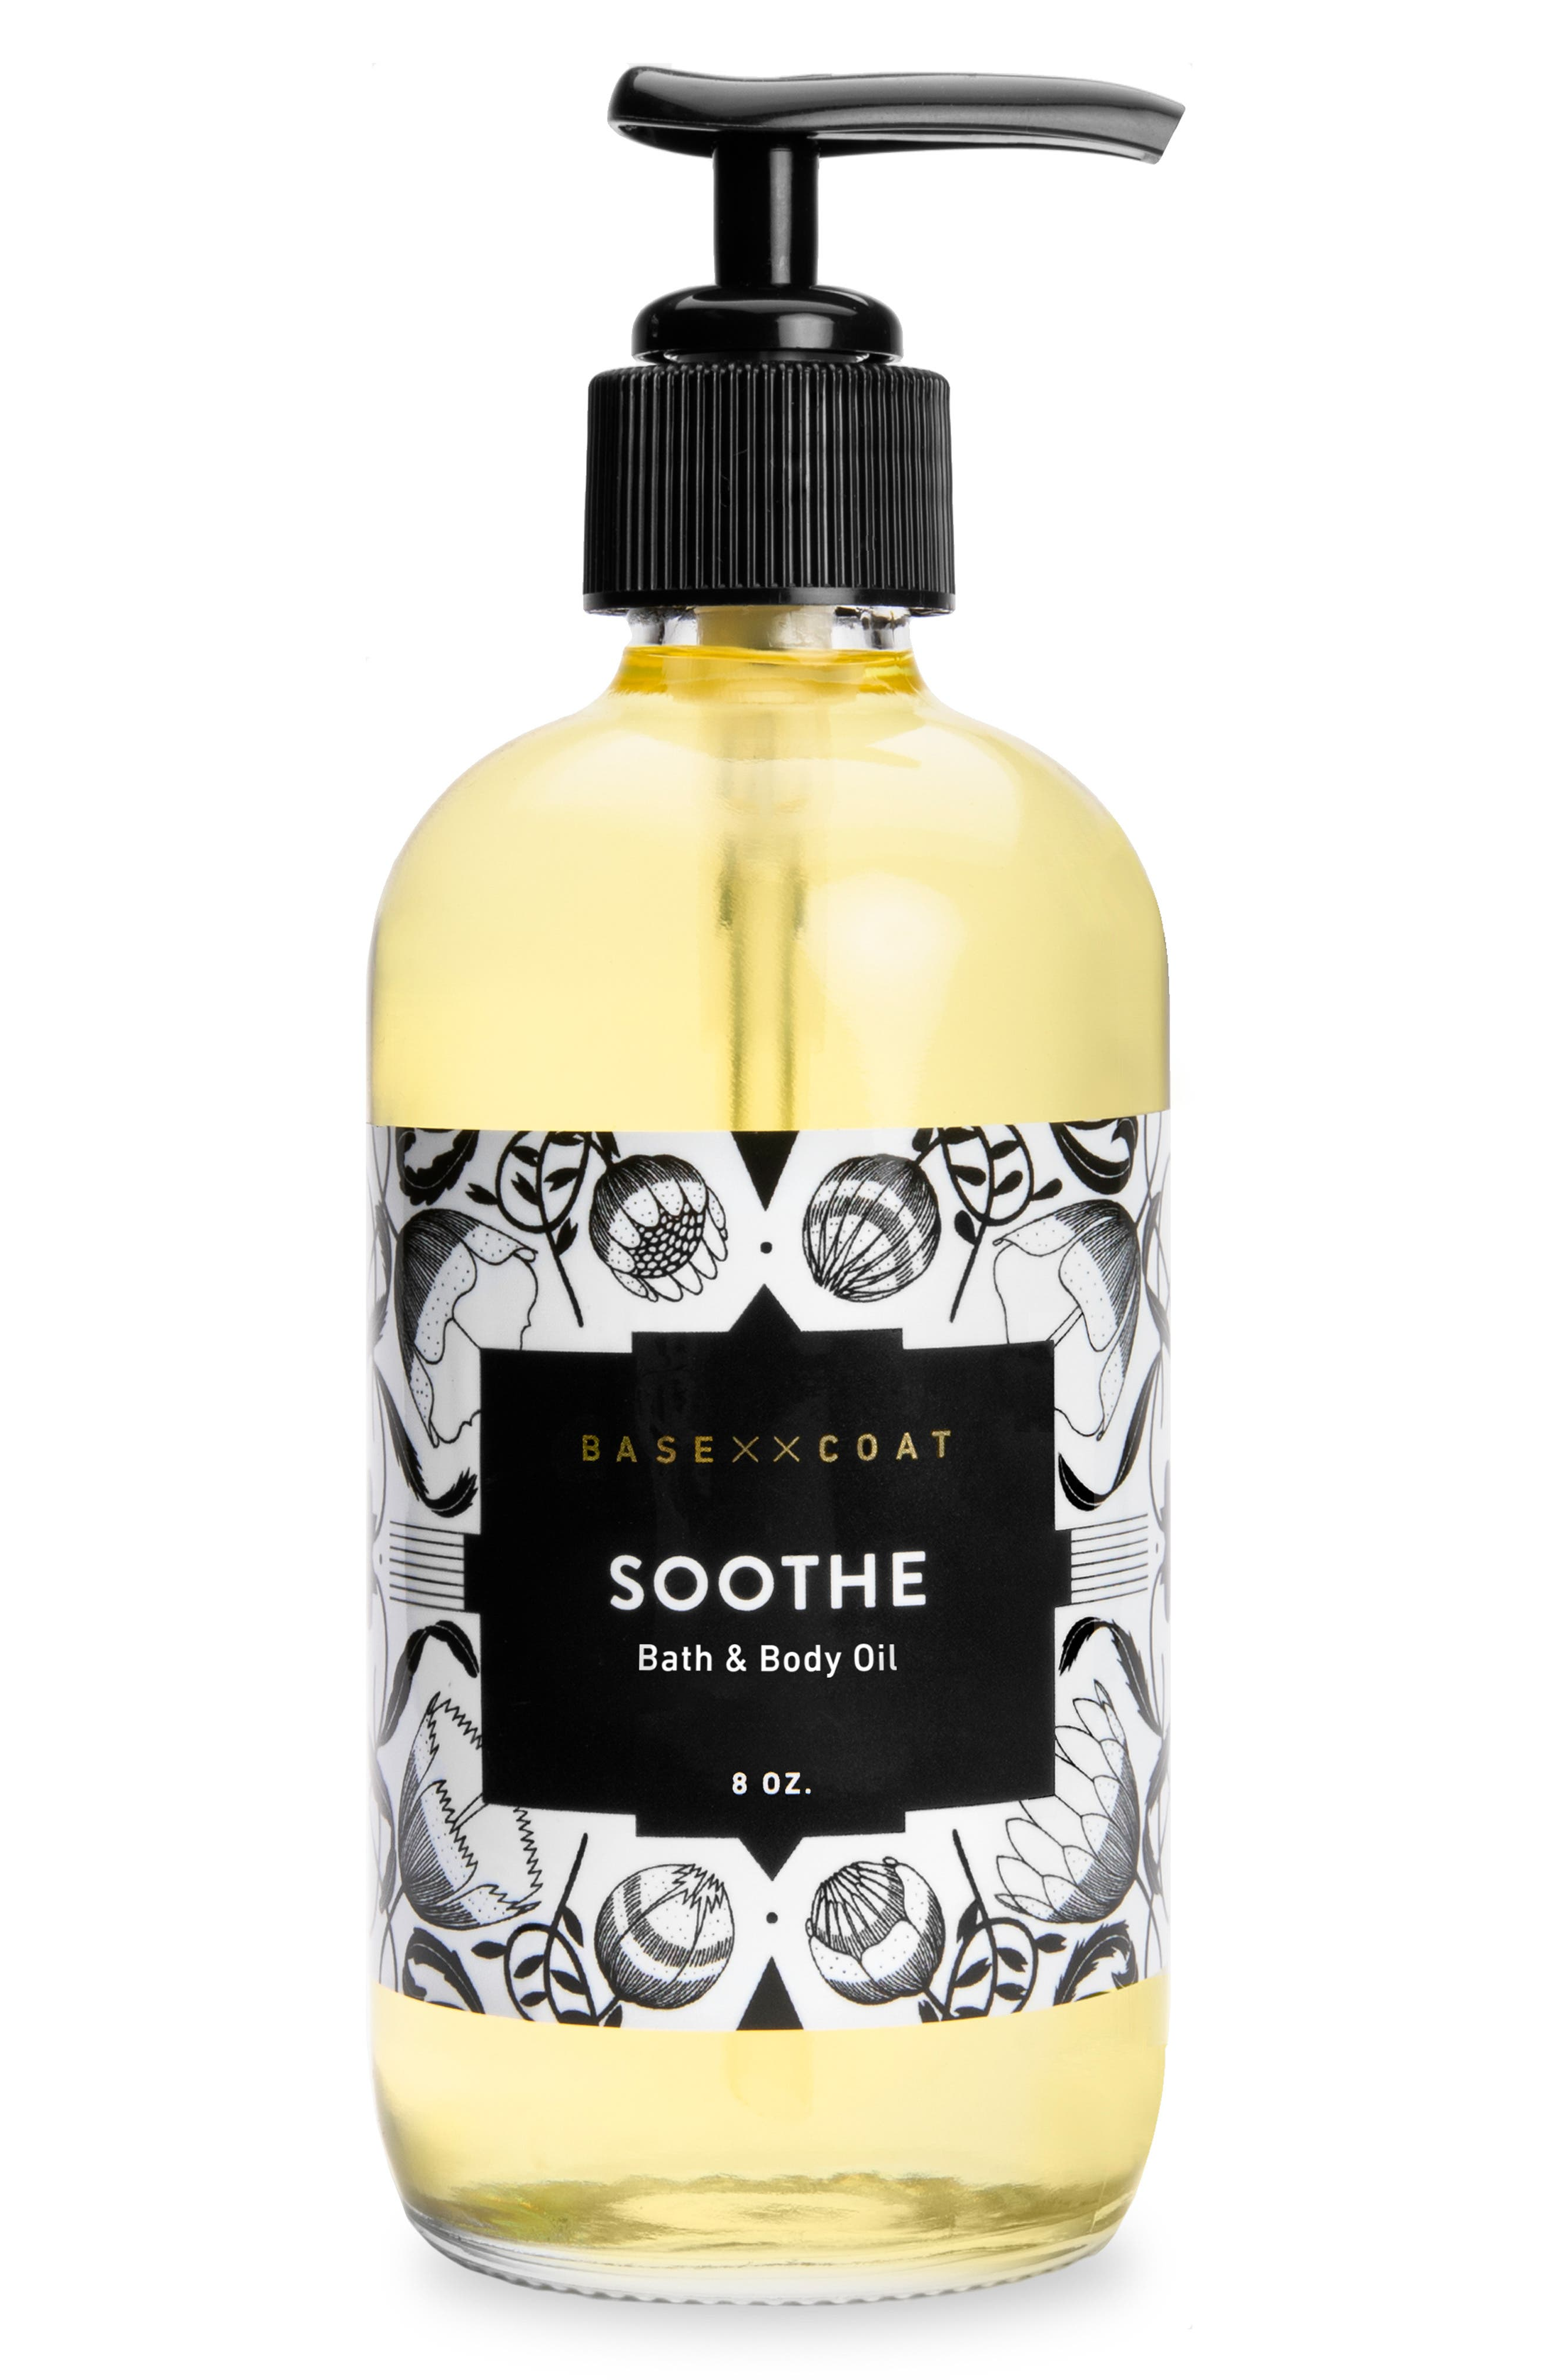 What it is: A bath and body oil that leaves skin feeling hydrated and nourished. What it does: This luxurious and versatile oil can be used on the body and face as a daily moisturizer, or add a few drops to water for a skin-detoxifying and mood-calming bath or nail soak. How to use: Add a few pumps to your foot or body bath to hydrate dry skin. Massage into skin as a daily moisturizer. Style Name: Base Coat Bath & Body Oil. Style Number: 5673970.